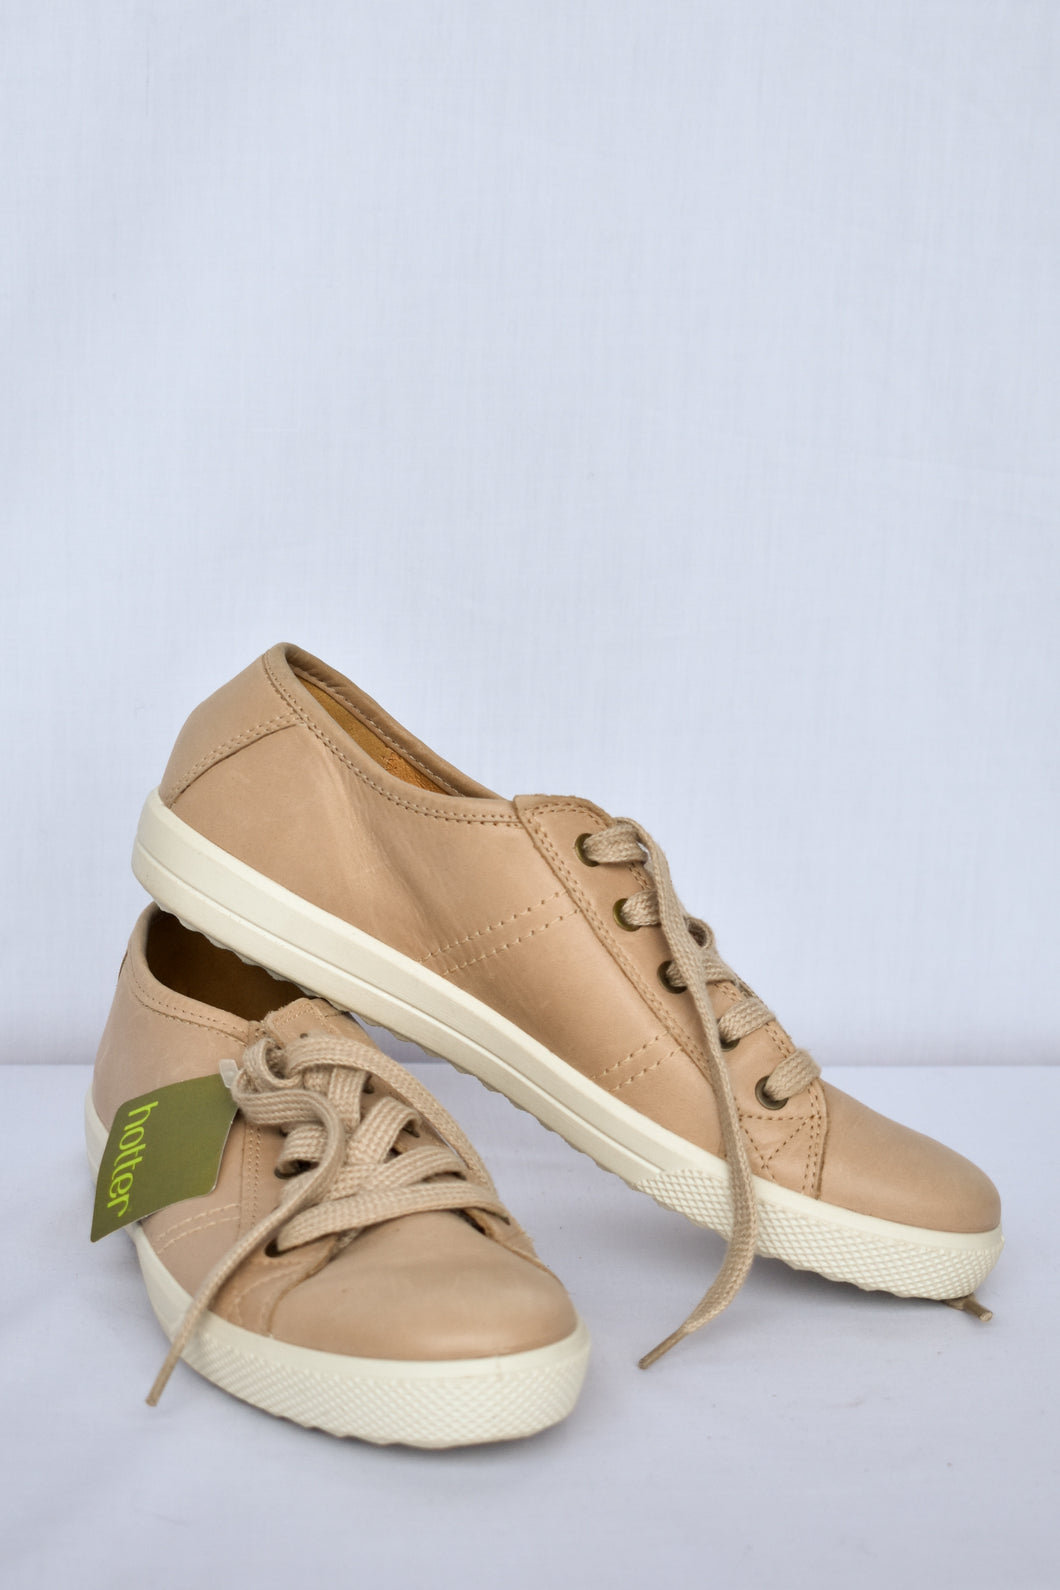 Hotter NEW lace up sneakers, size UK 5.5